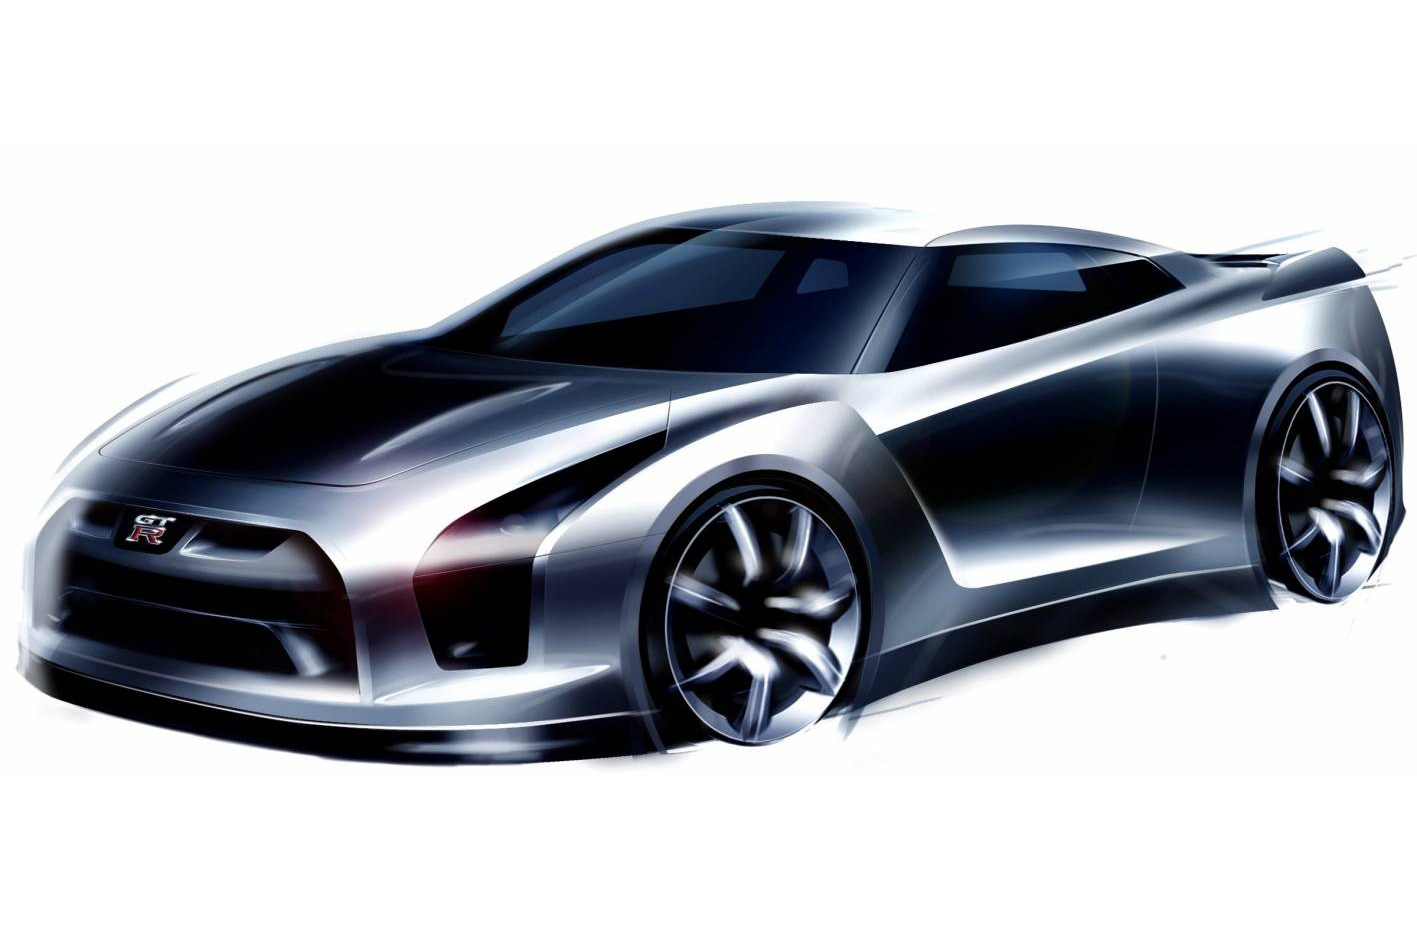 all-new nissan gt-r 'r36' set for 2016 - report | performancedrive